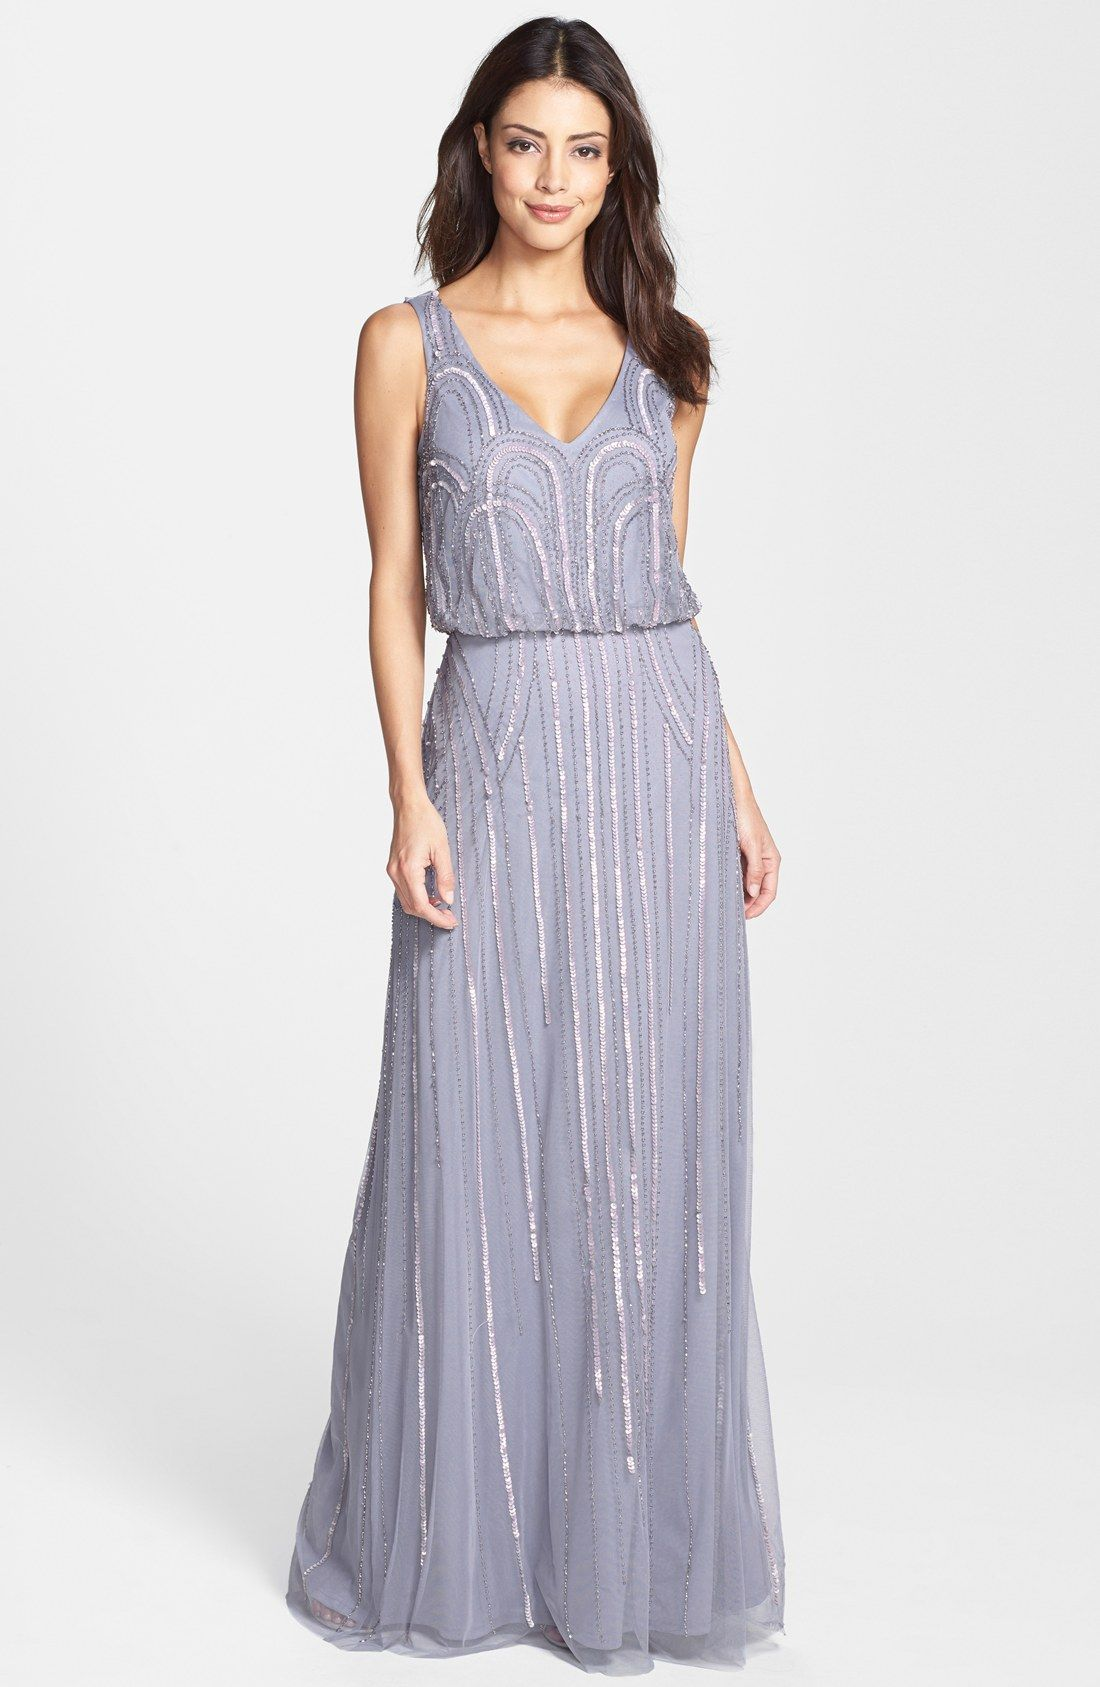 Adrianna Papell Beaded Mesh Blouson Gown Was: $318.00 Now: $190.80 ...